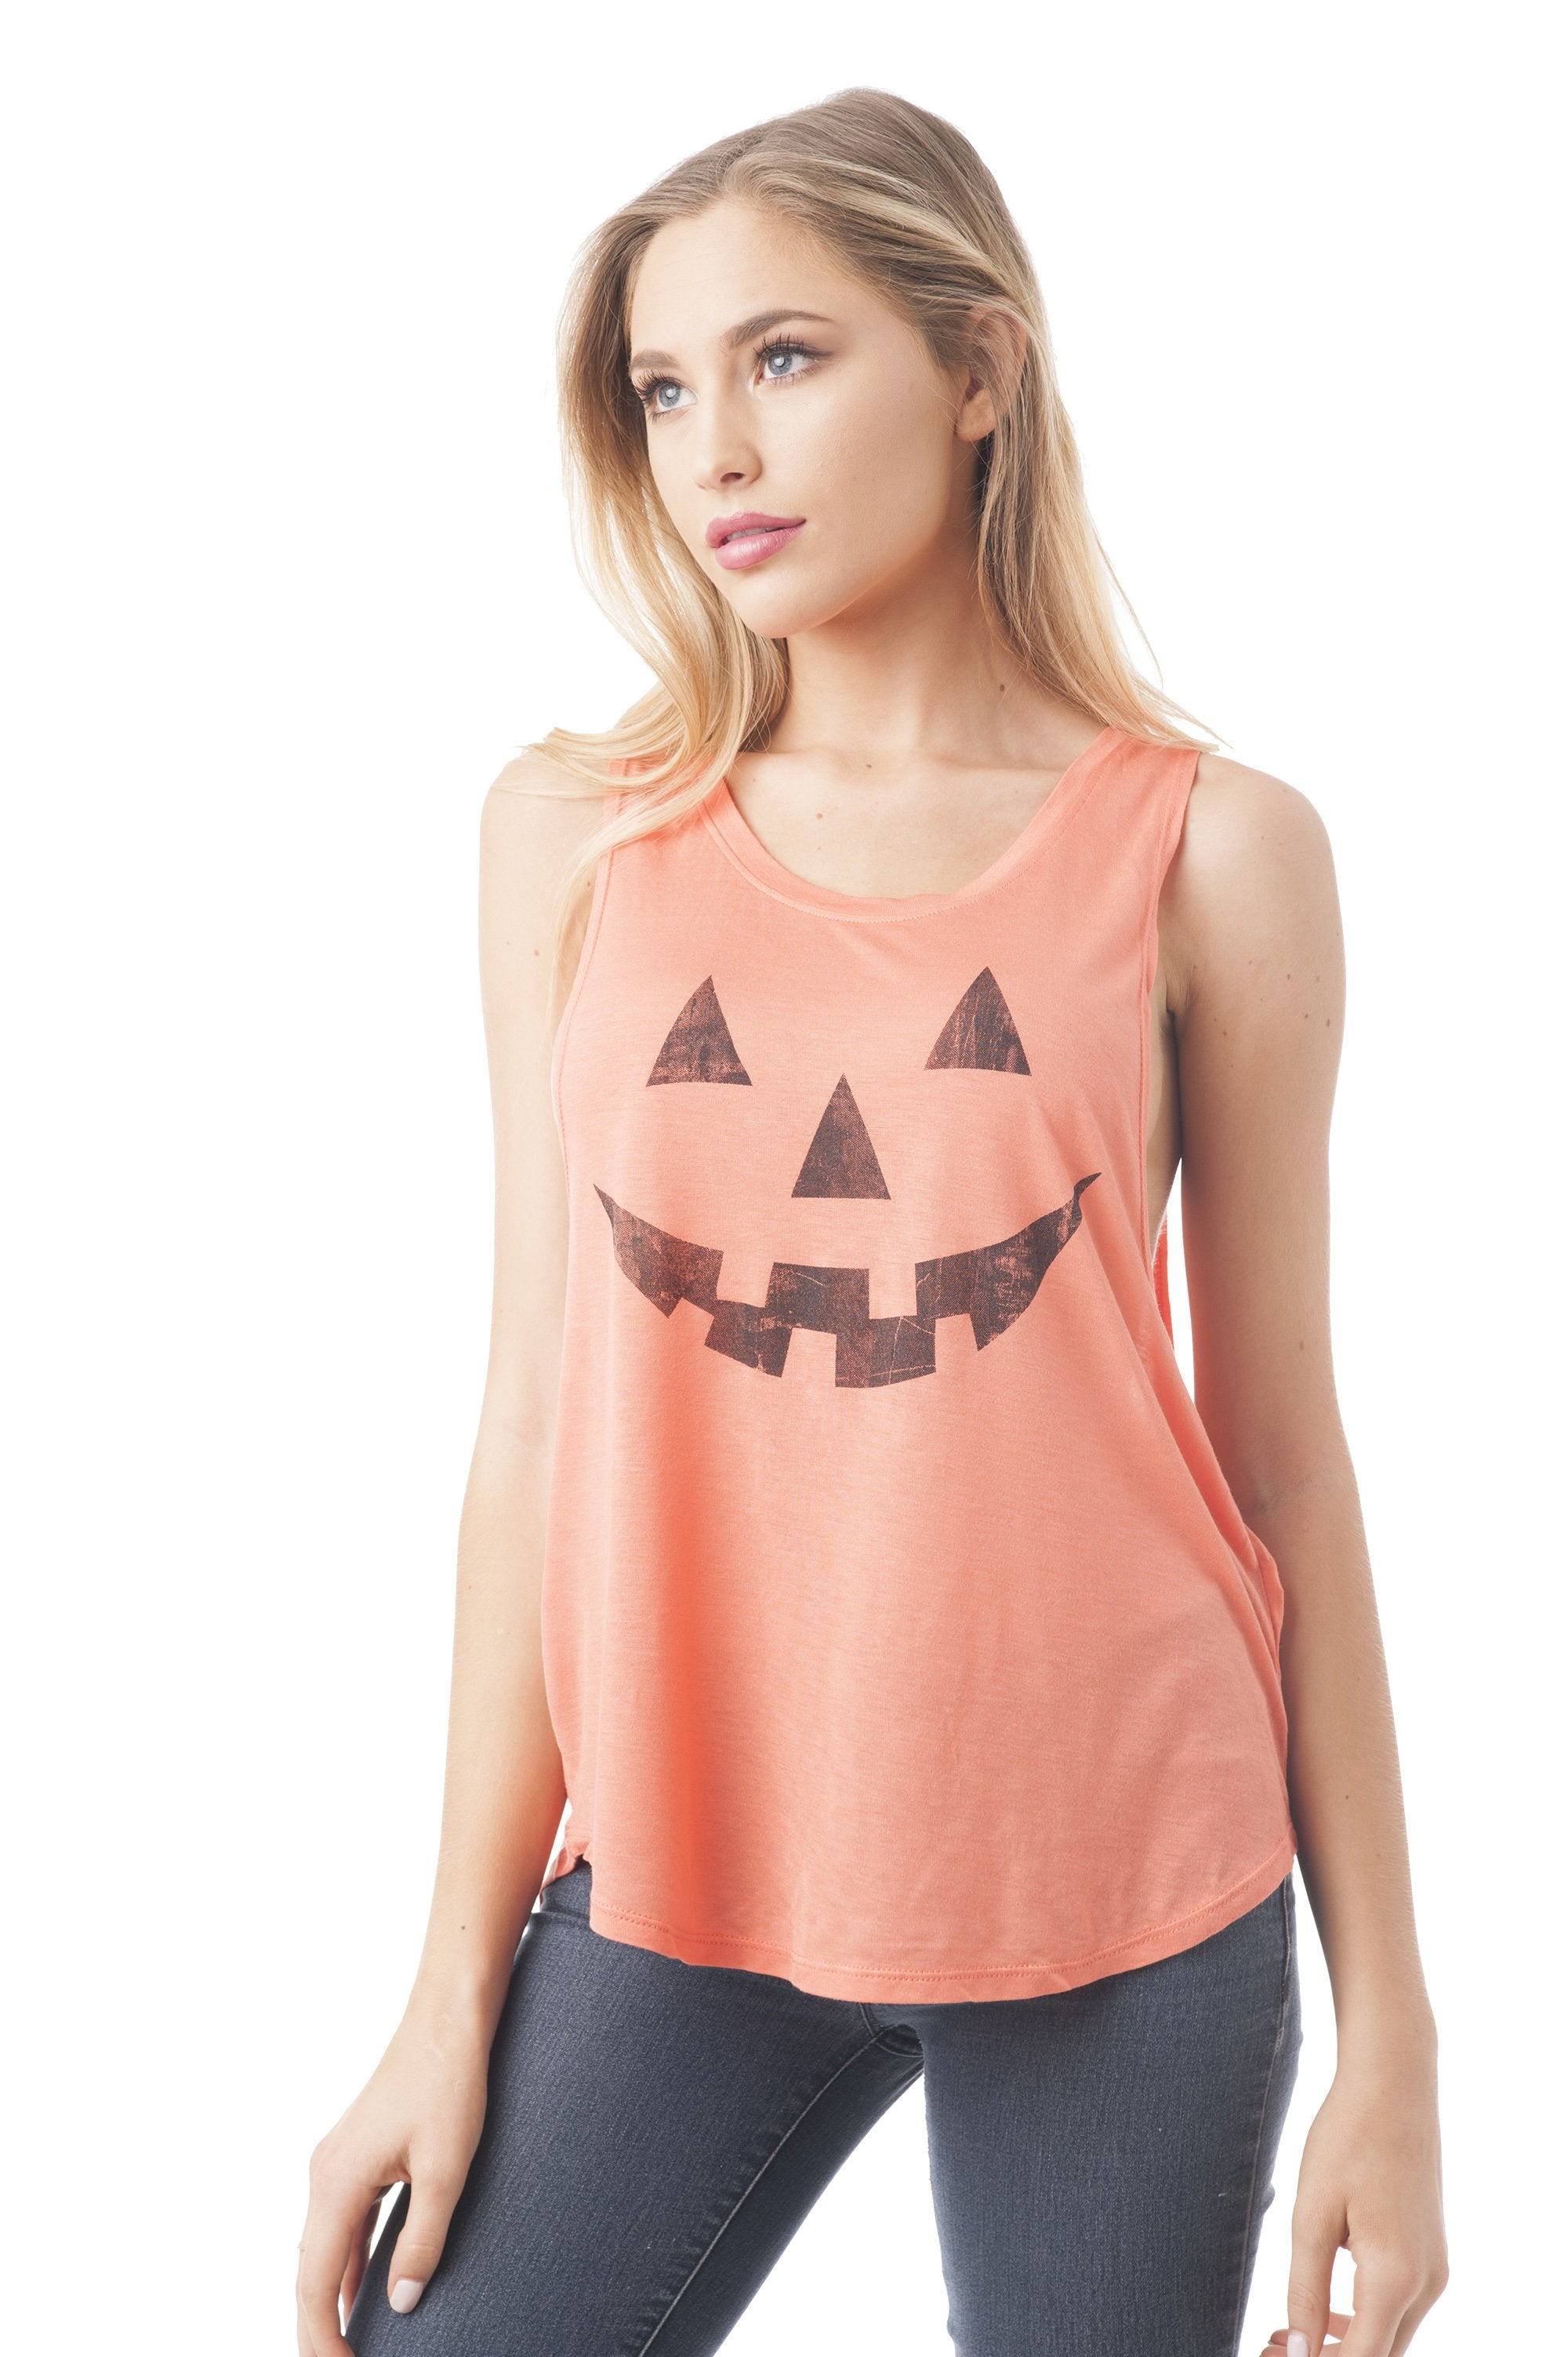 Khanomak Women's Sleeveless Shirt Tank Top Graphic Tee's Pumpkin Face